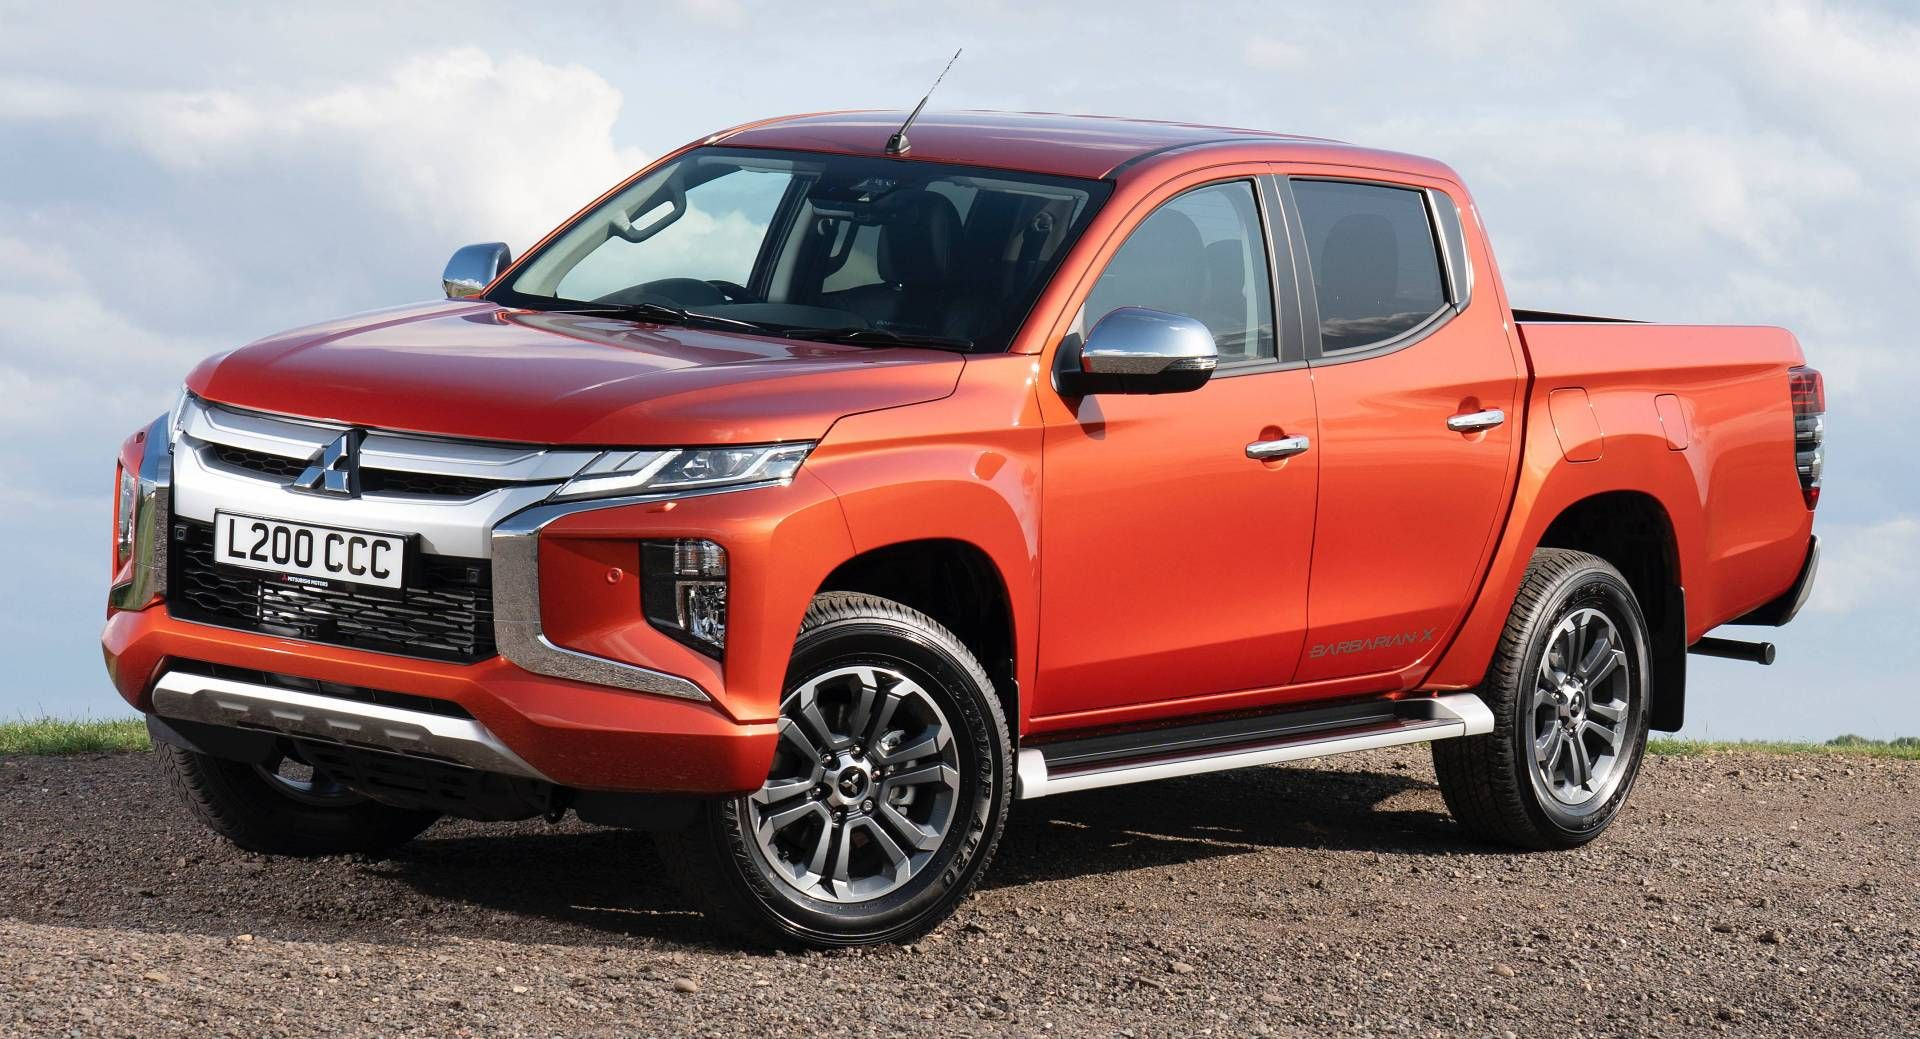 2020 Mitsubishi L200 Arrives In The Uk With 21 515 Base Price Diesel Galleries Mitsubishi Mitsubishil200 Mitsub Mitsubishi Truck Mitsubishi Pickup Trucks